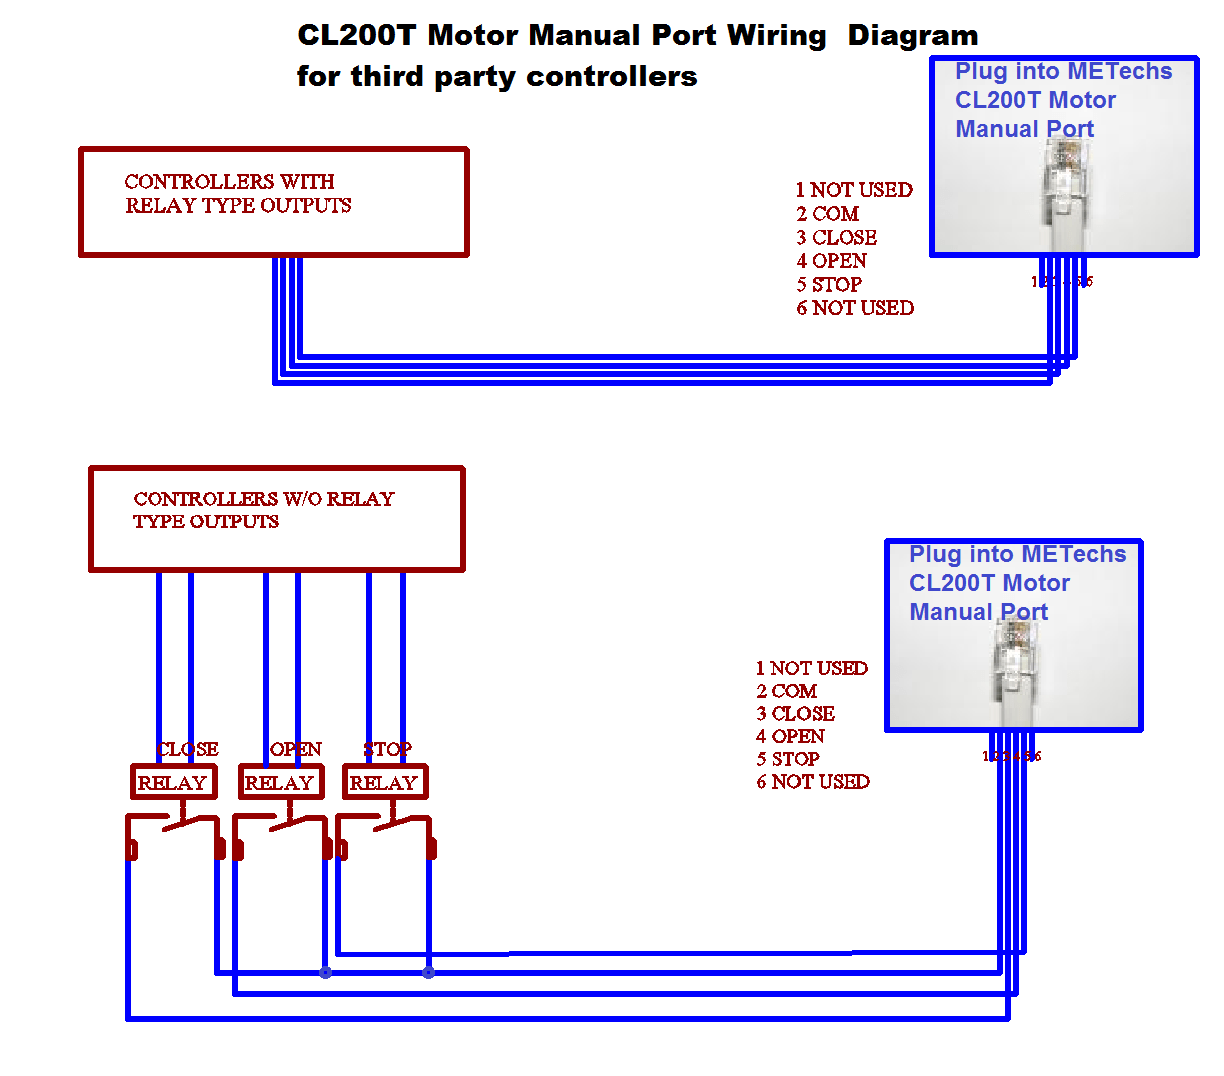 Rj25 Wiring Diagram 19 Images Auto Electrical Displaying 19gt For 1 Wire Alternator